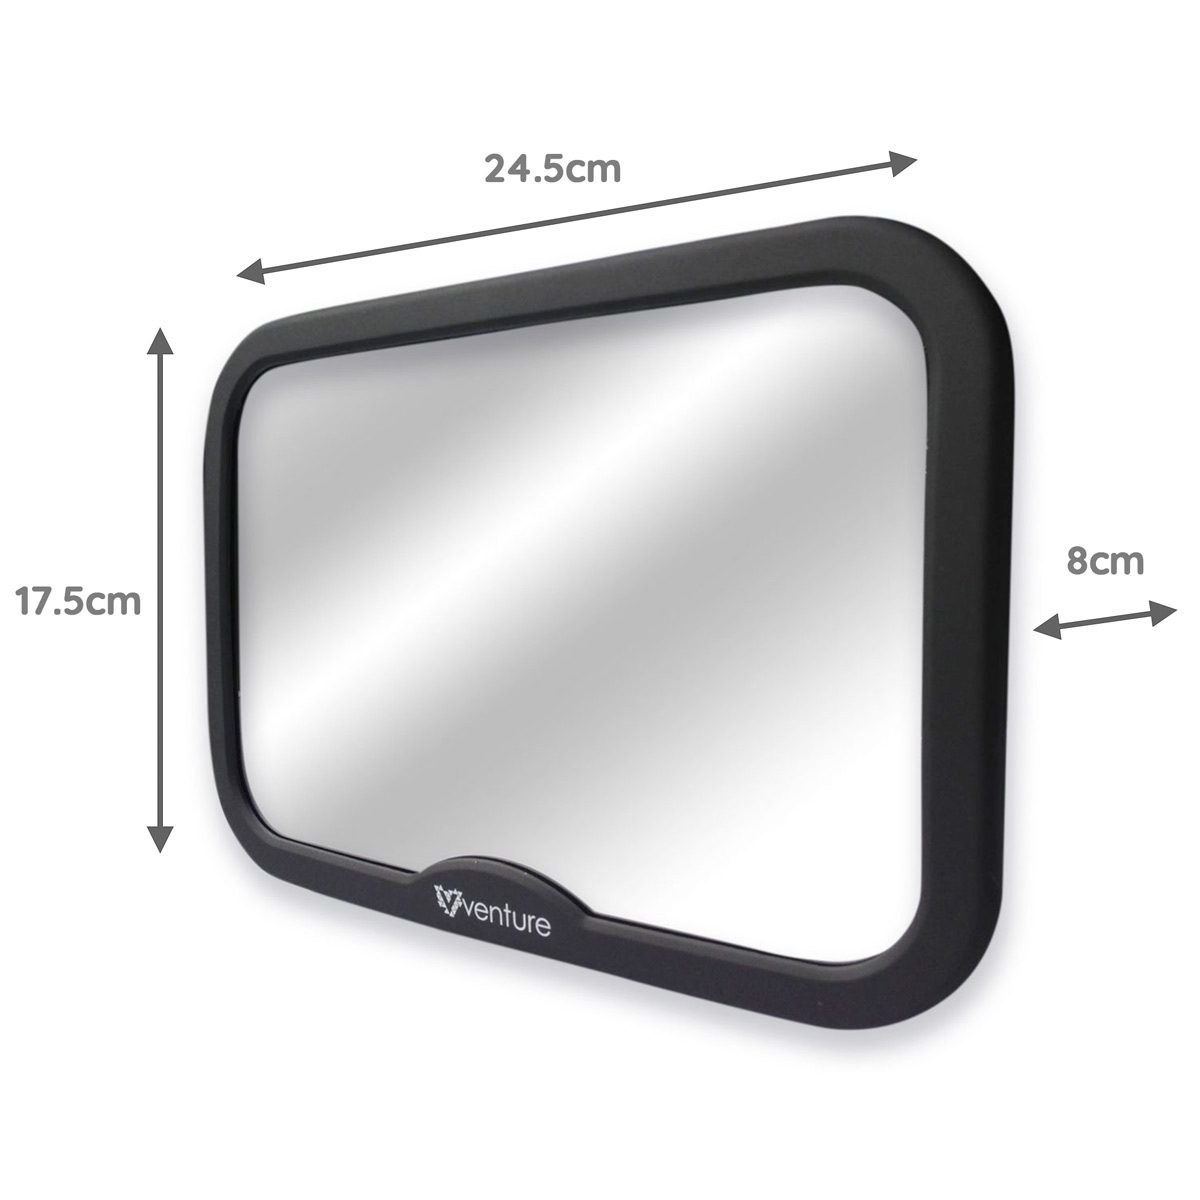 Venture Acti-Vue Car mirror dimensions